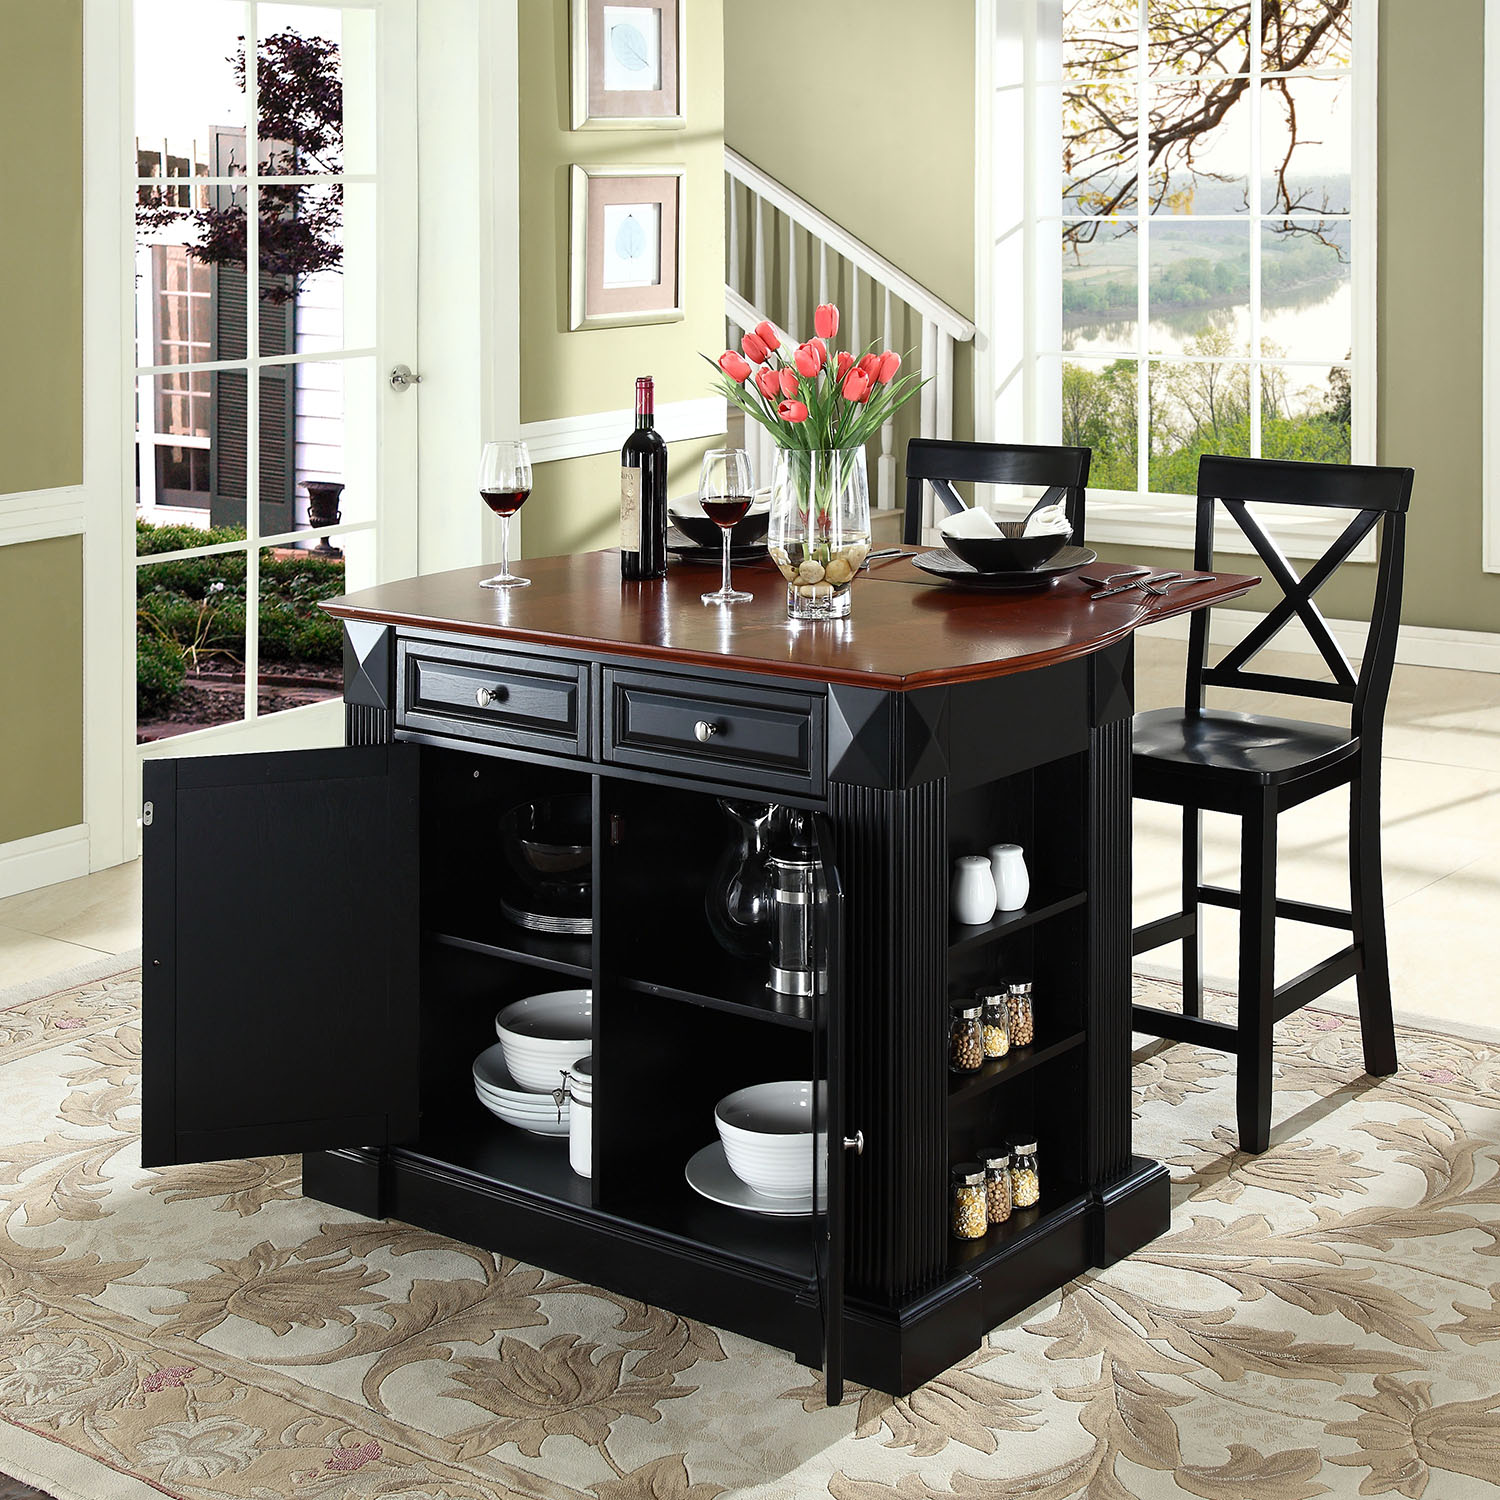 "Drop Leaf Kitchen Island in Black Finish with 24"" Black X-Back Stools - CROS-KF300073BK"